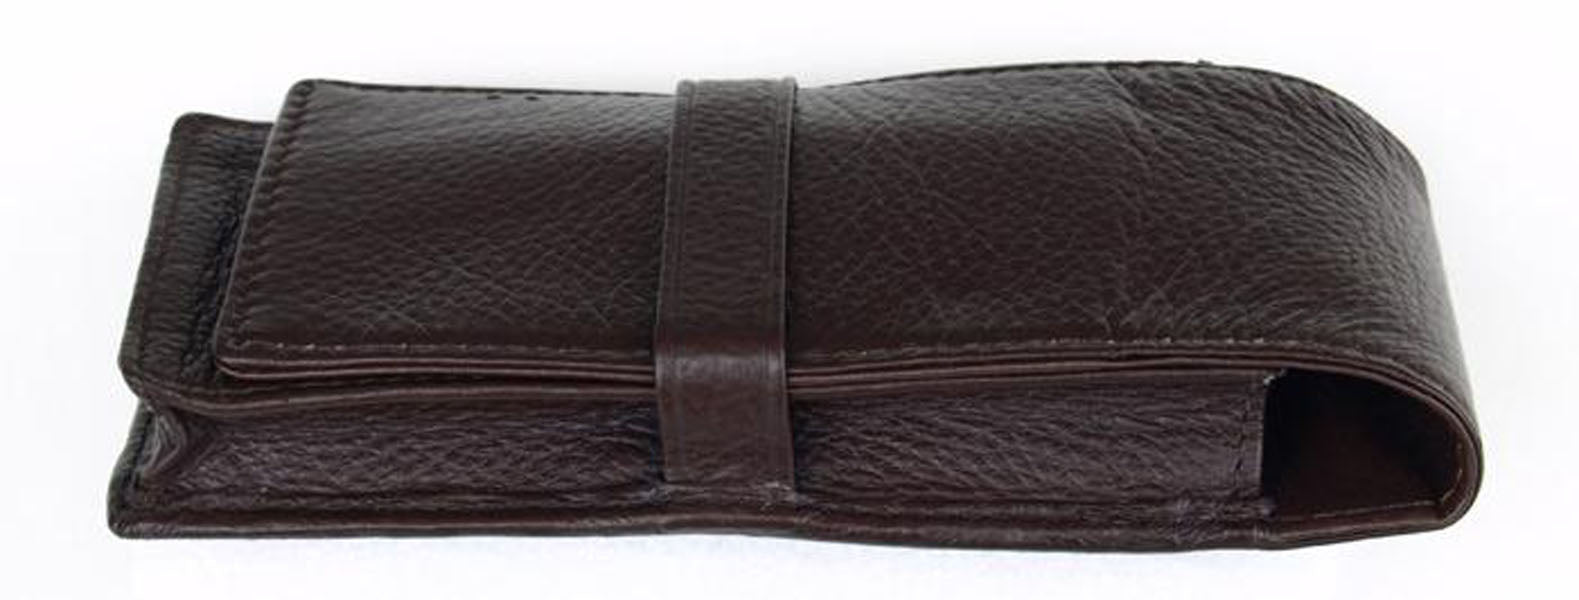 Penbrace 3 Pen Pouch - Brown Pen Case - Wancher Pen